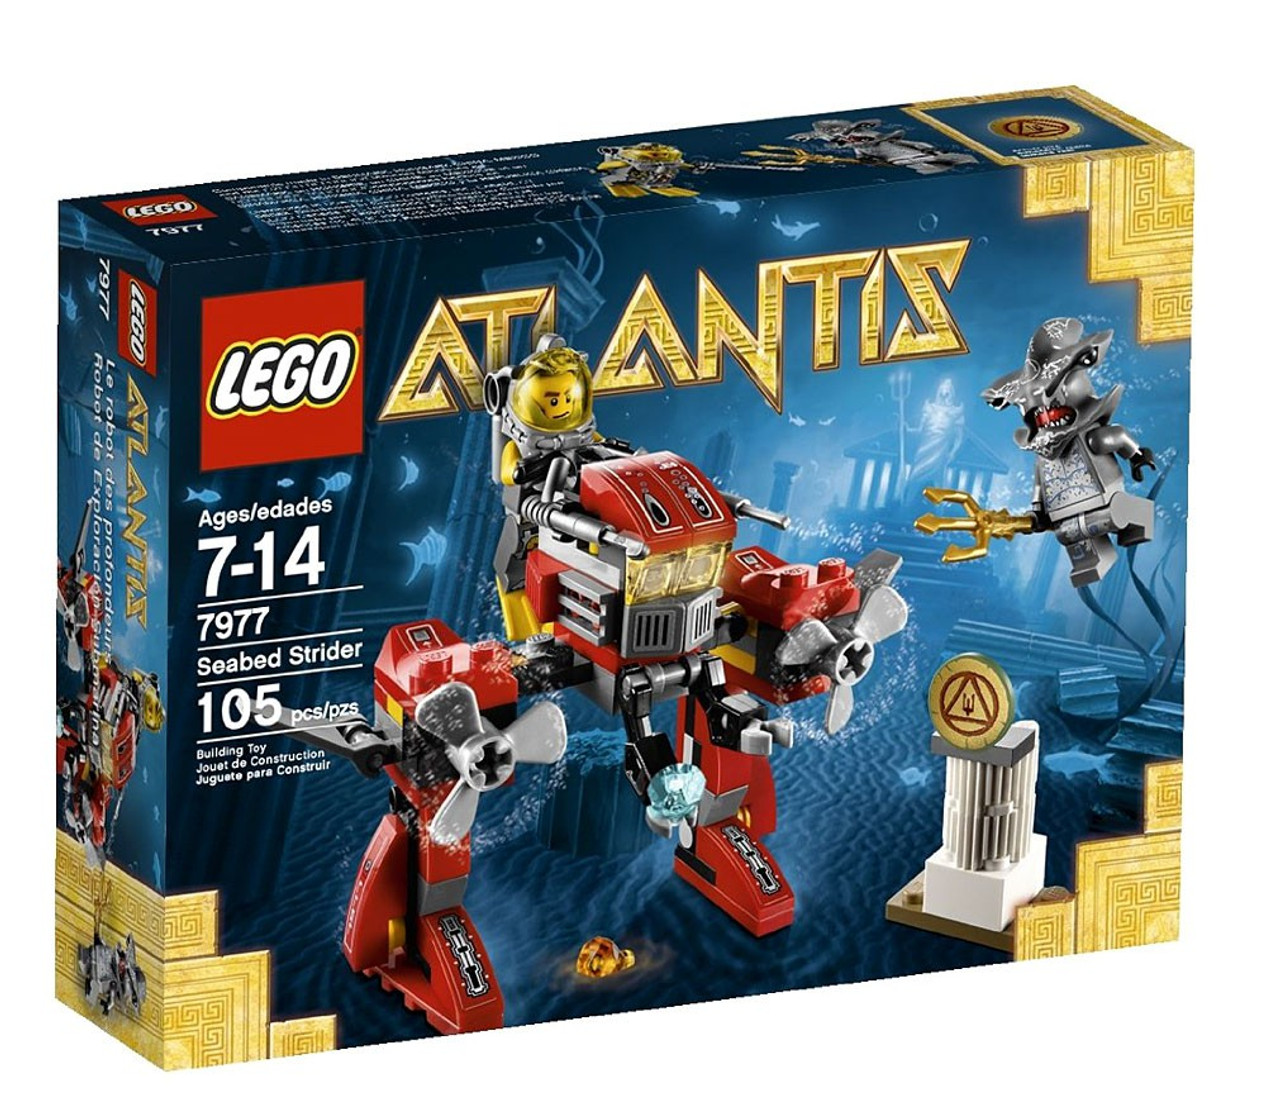 LEGO Atlantis Seabed Strider Set #7977